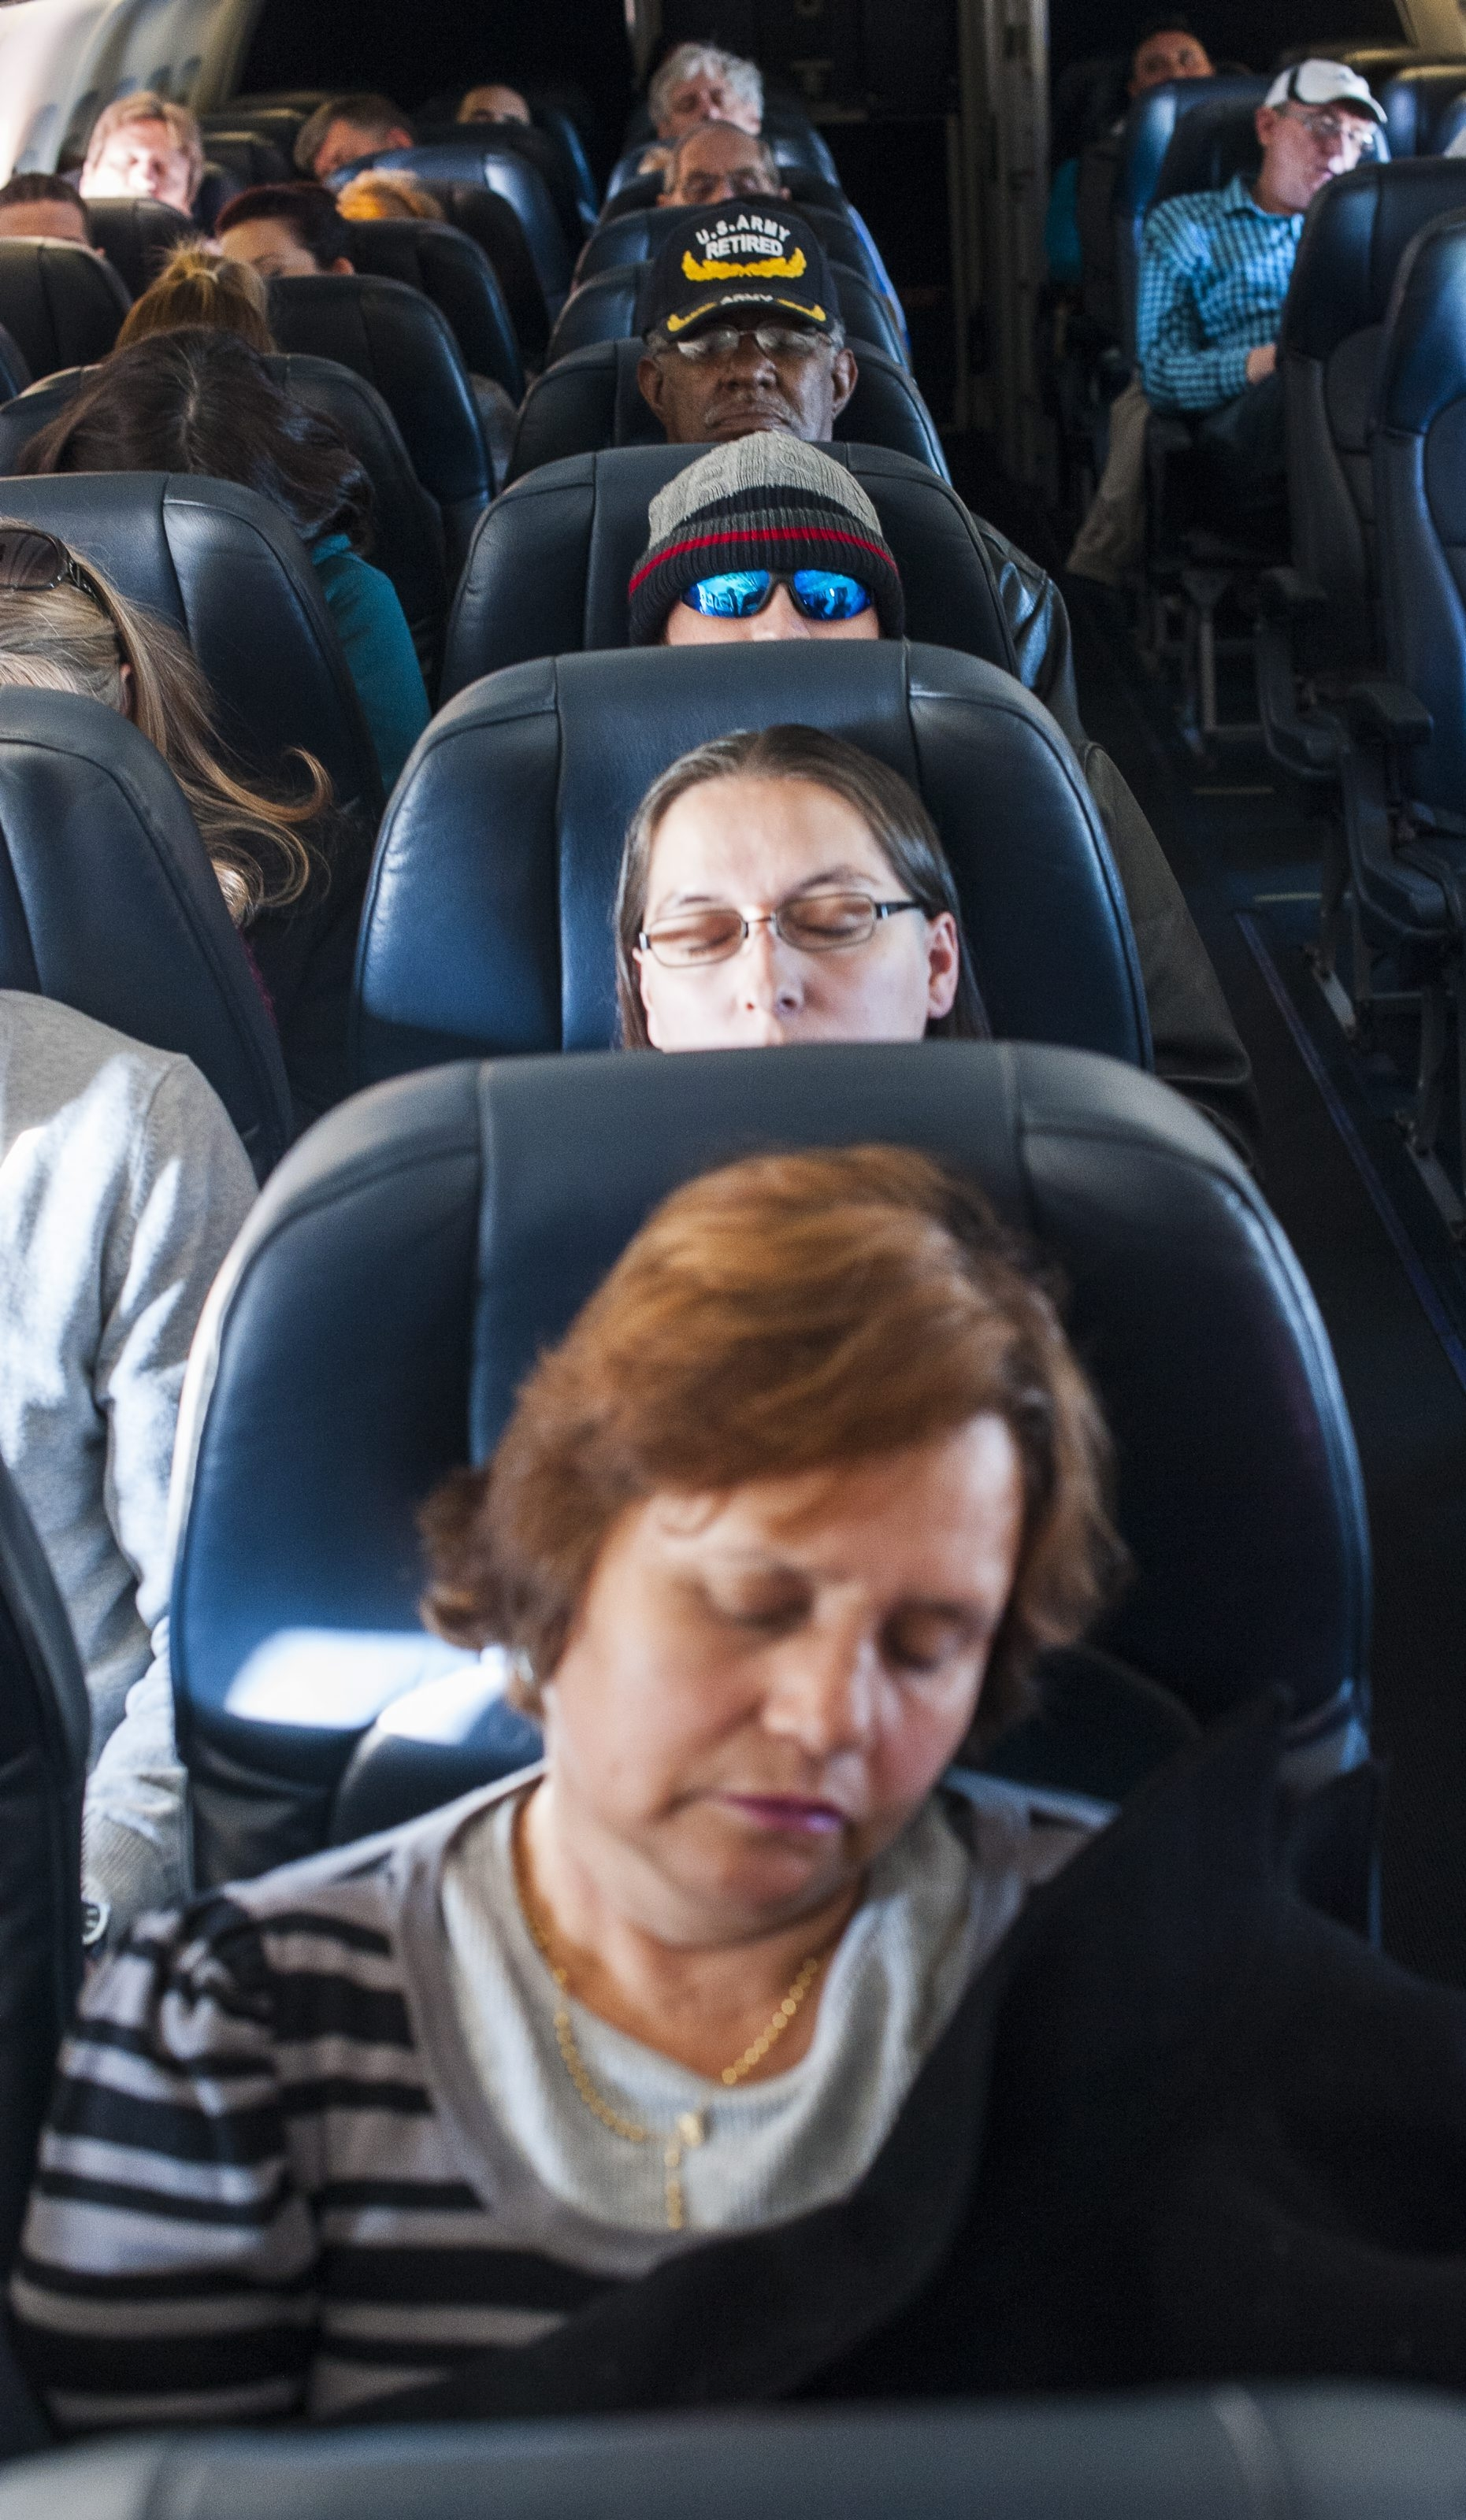 In the continuing push to add passengers, airlines are using seats that don't recline and that use less padding and lighter materials.